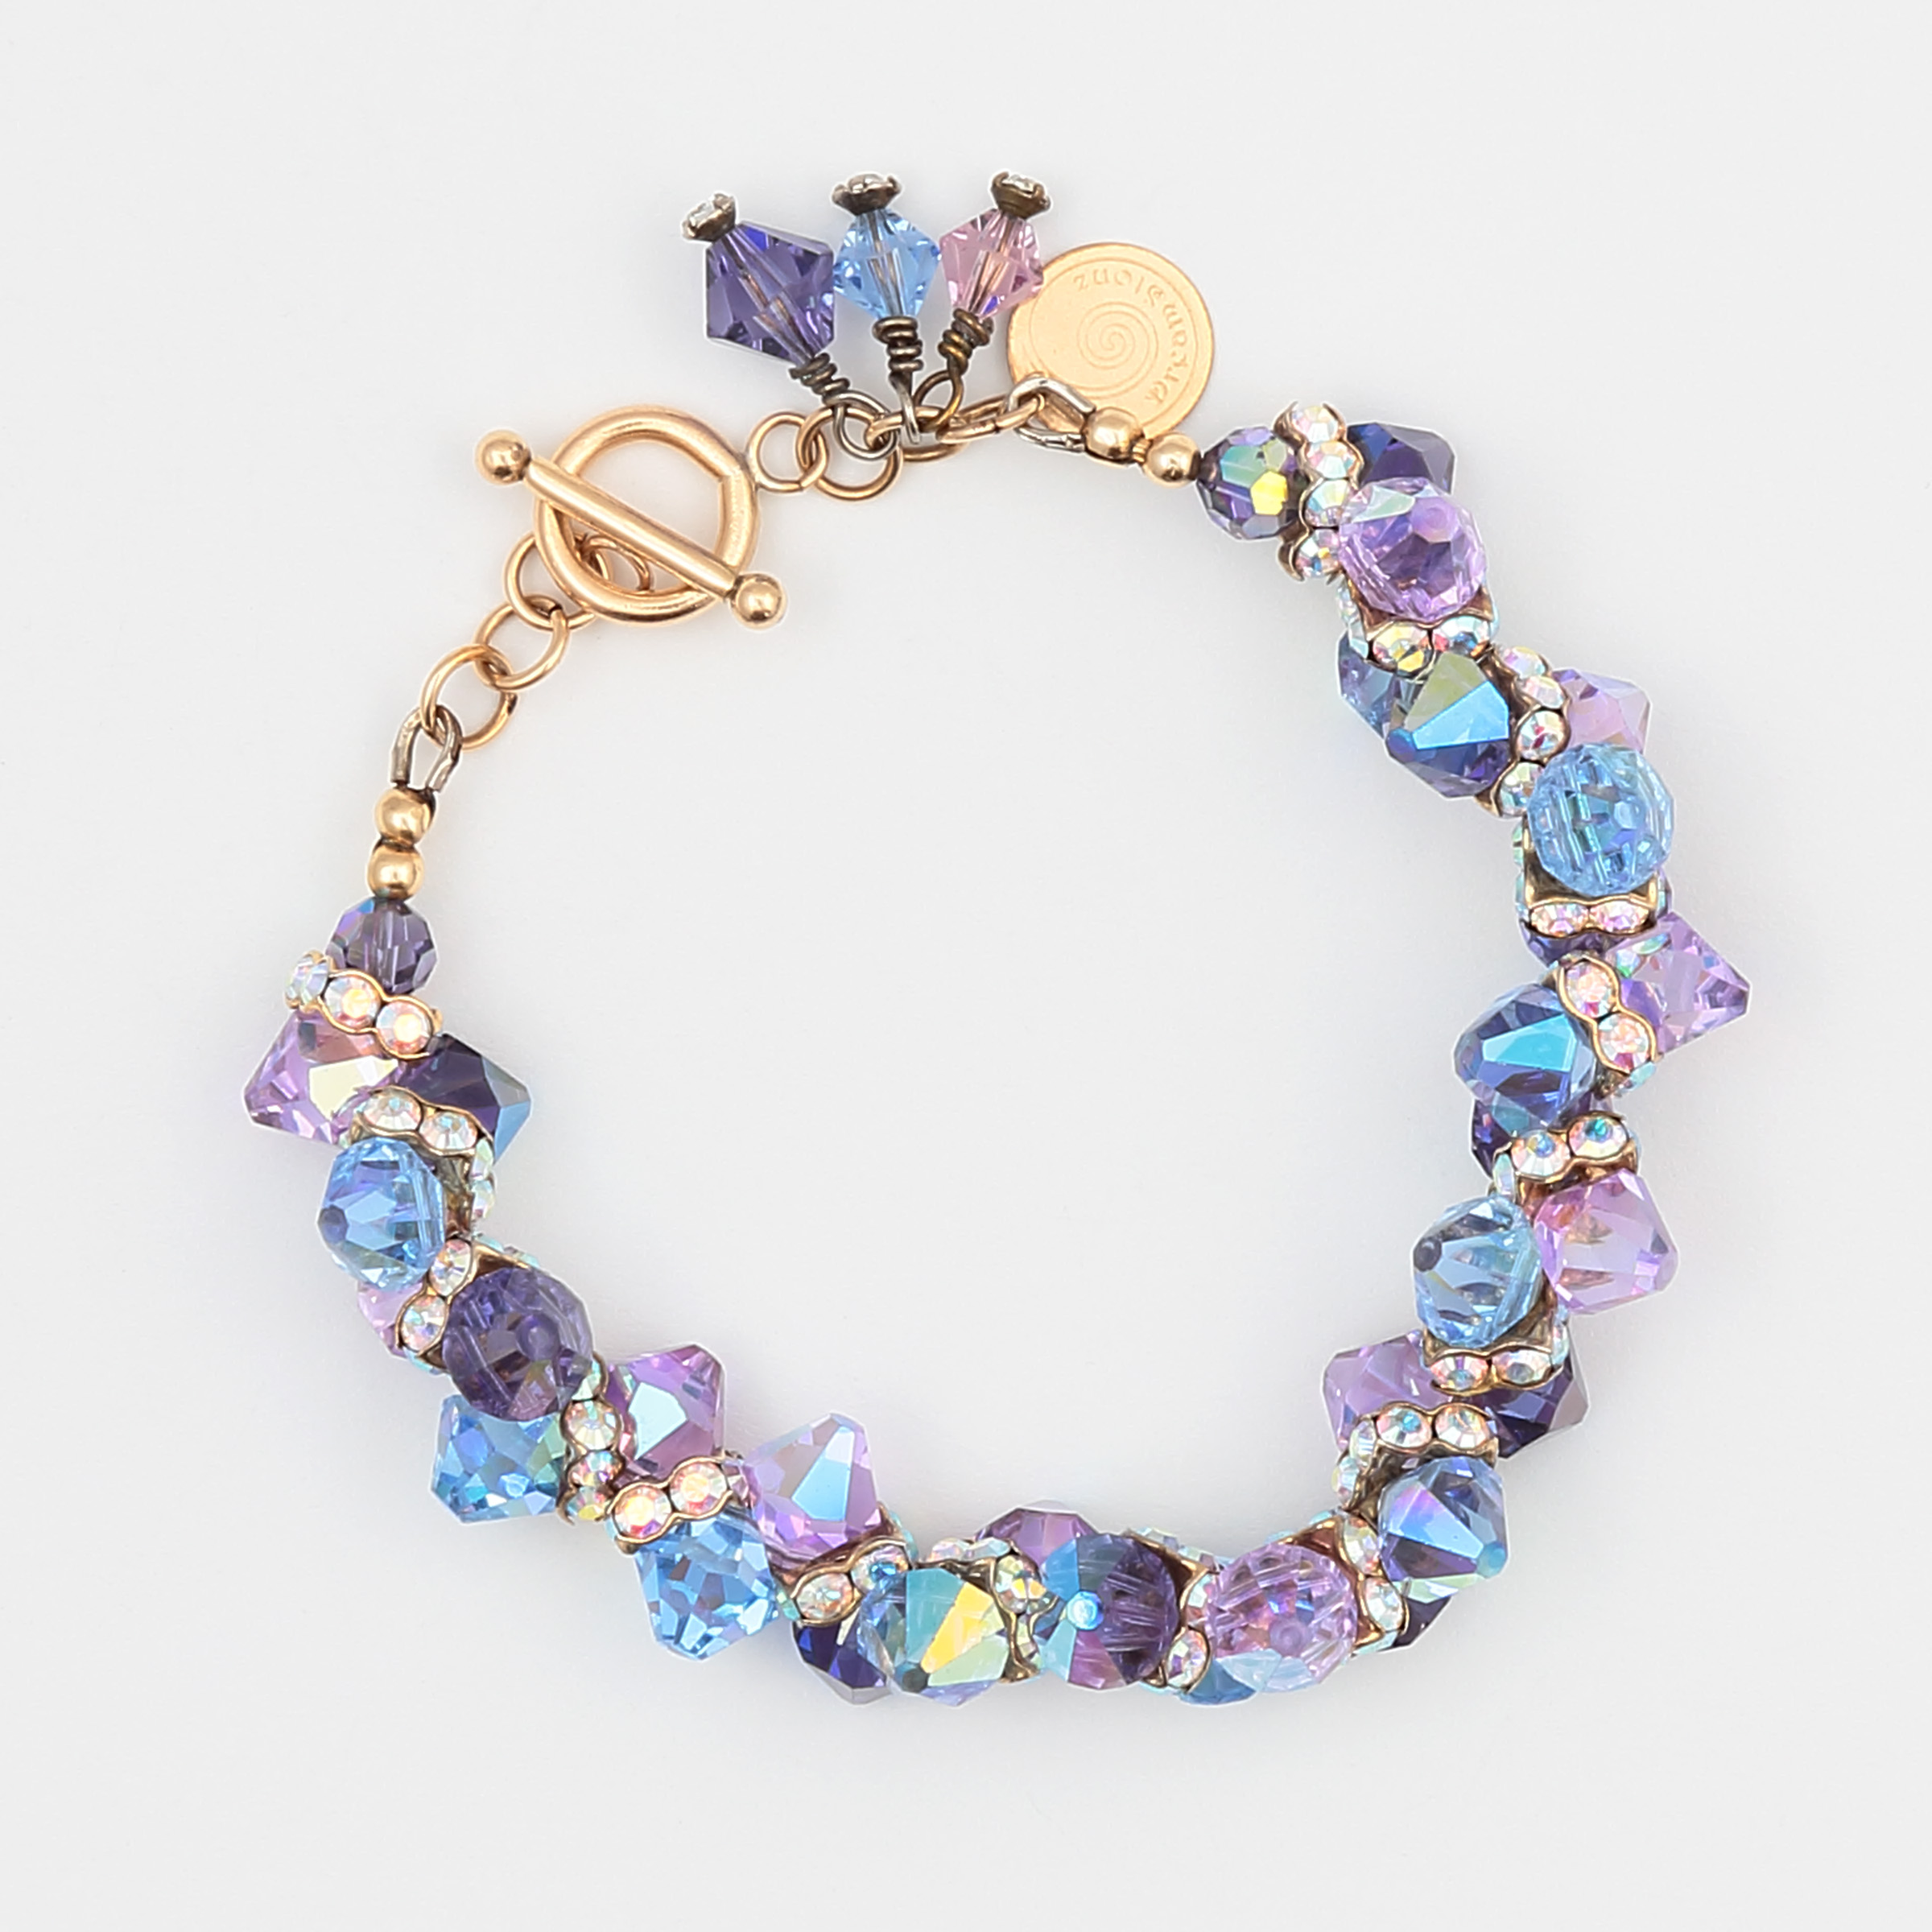 LAVENDER MIST BRACELET-purple, blue, and lavender Swarovski crystals with gold vermeil